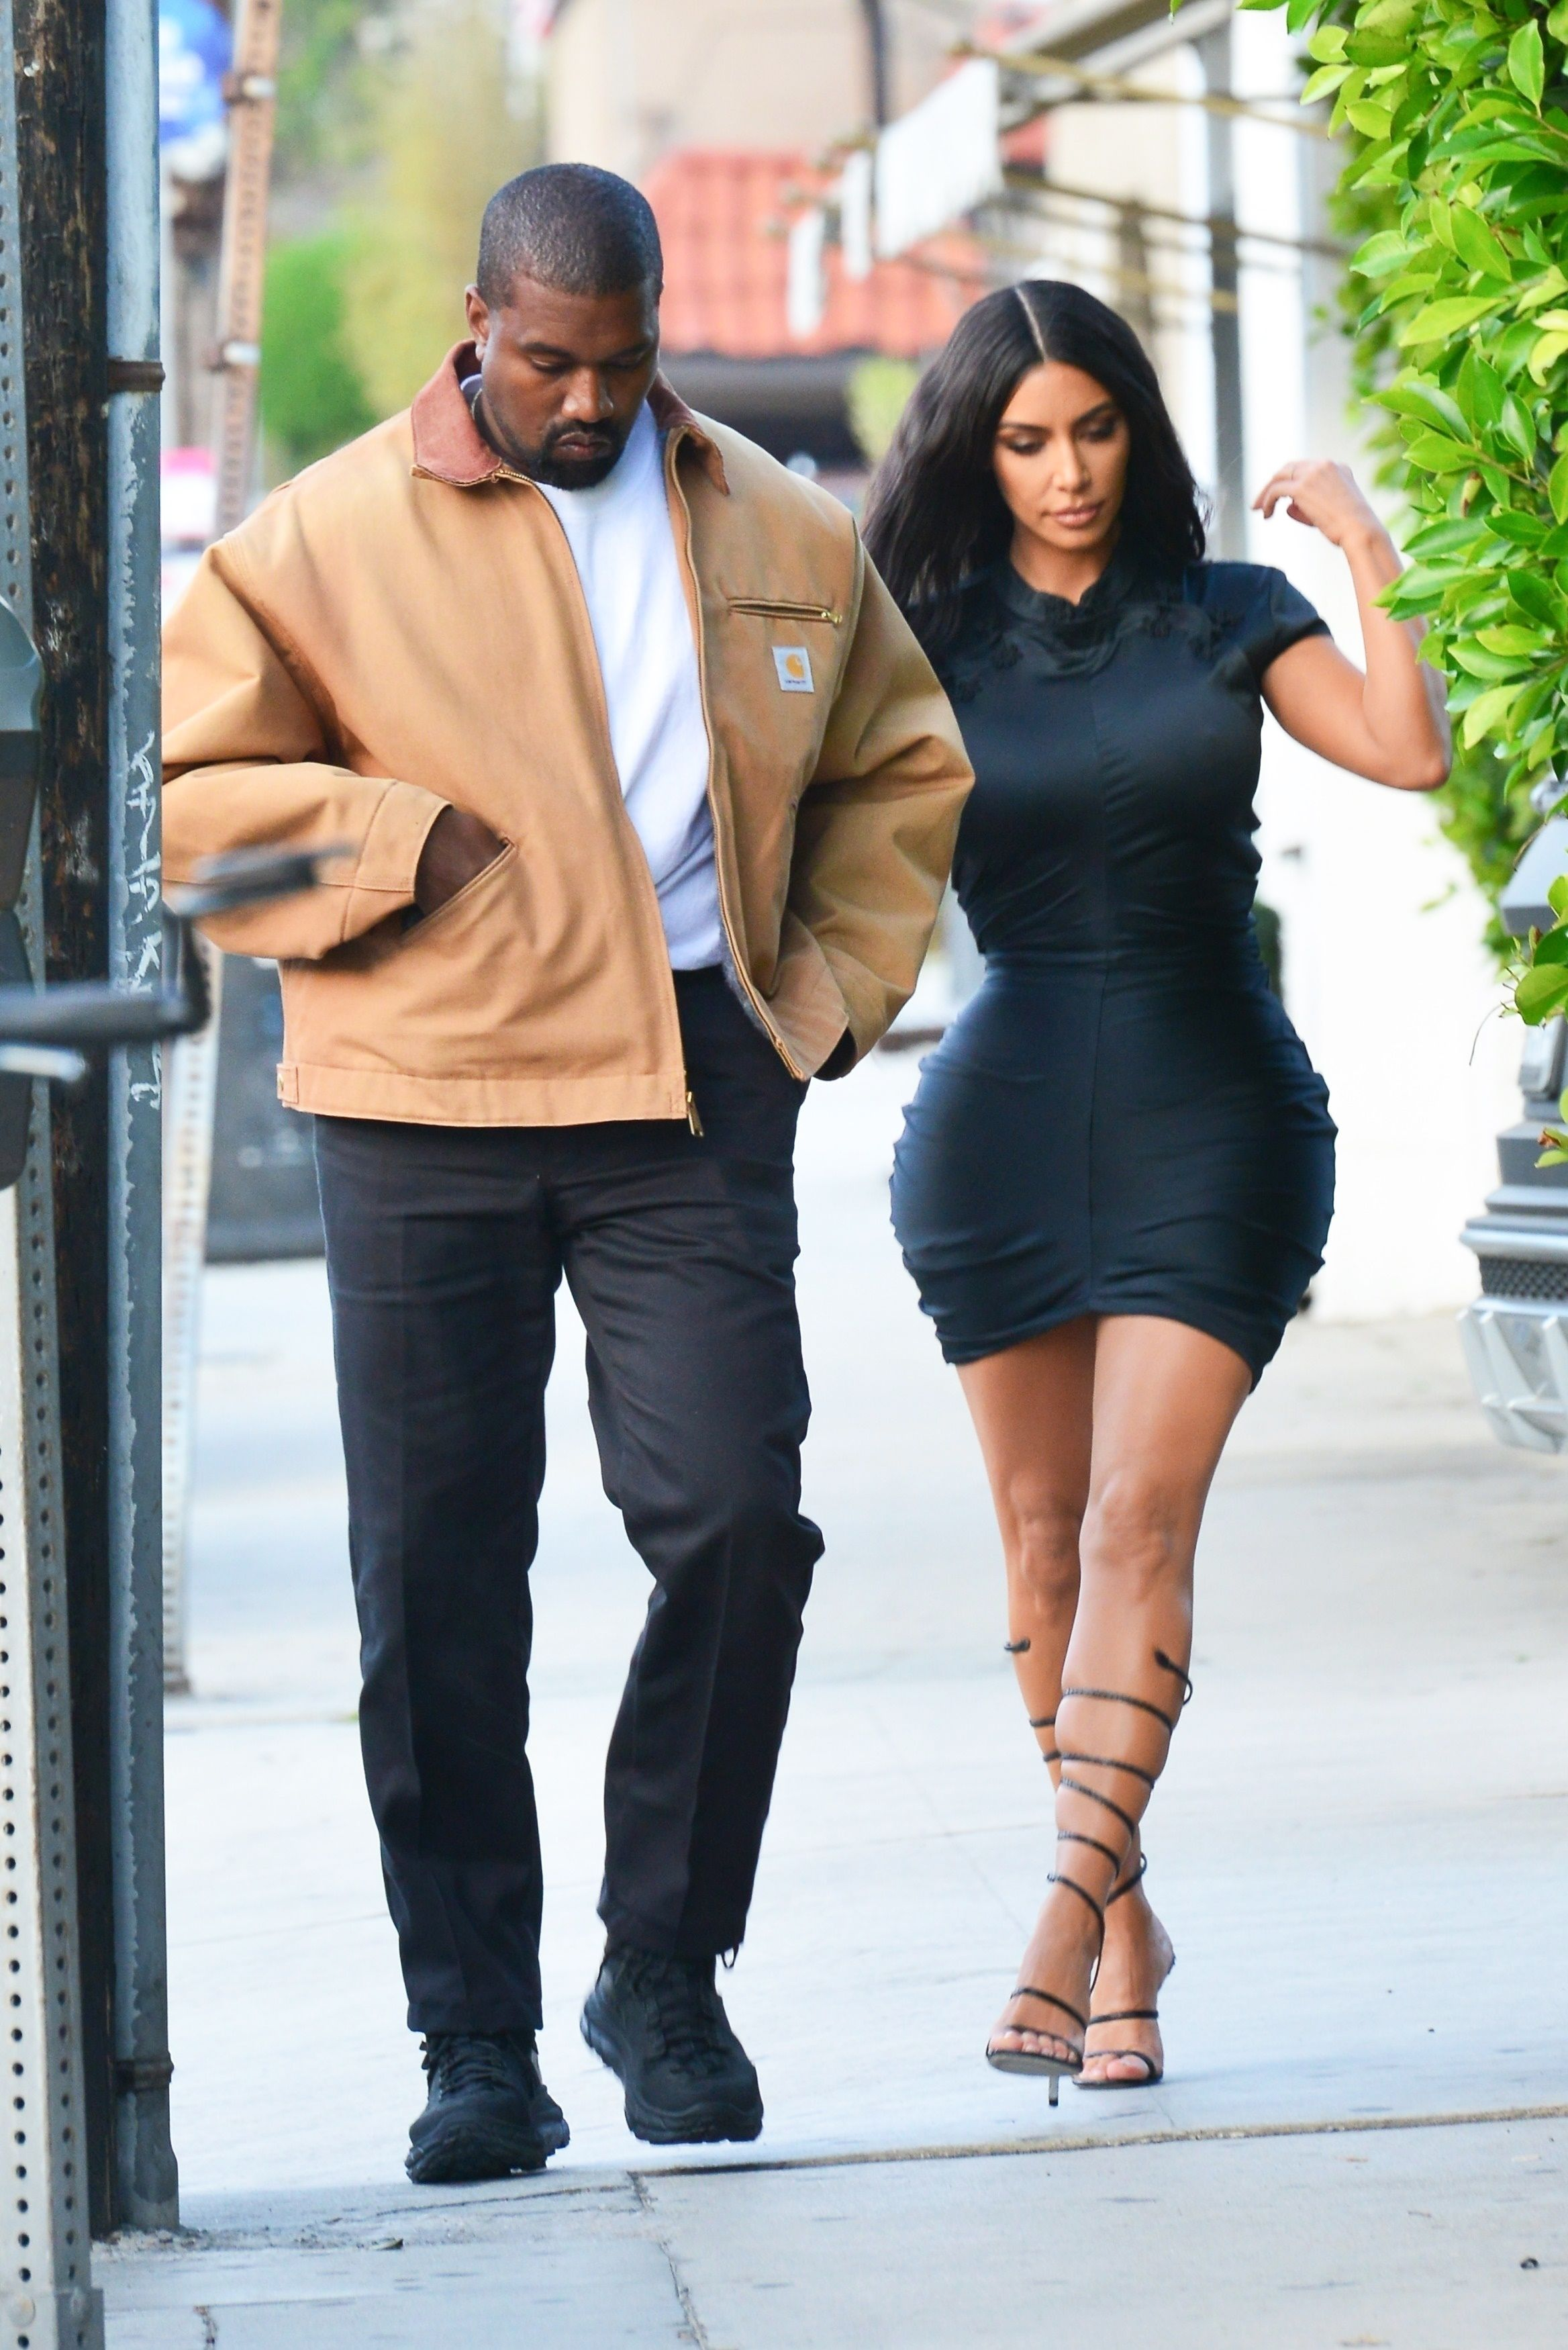 kim kardashian and kanye west dating